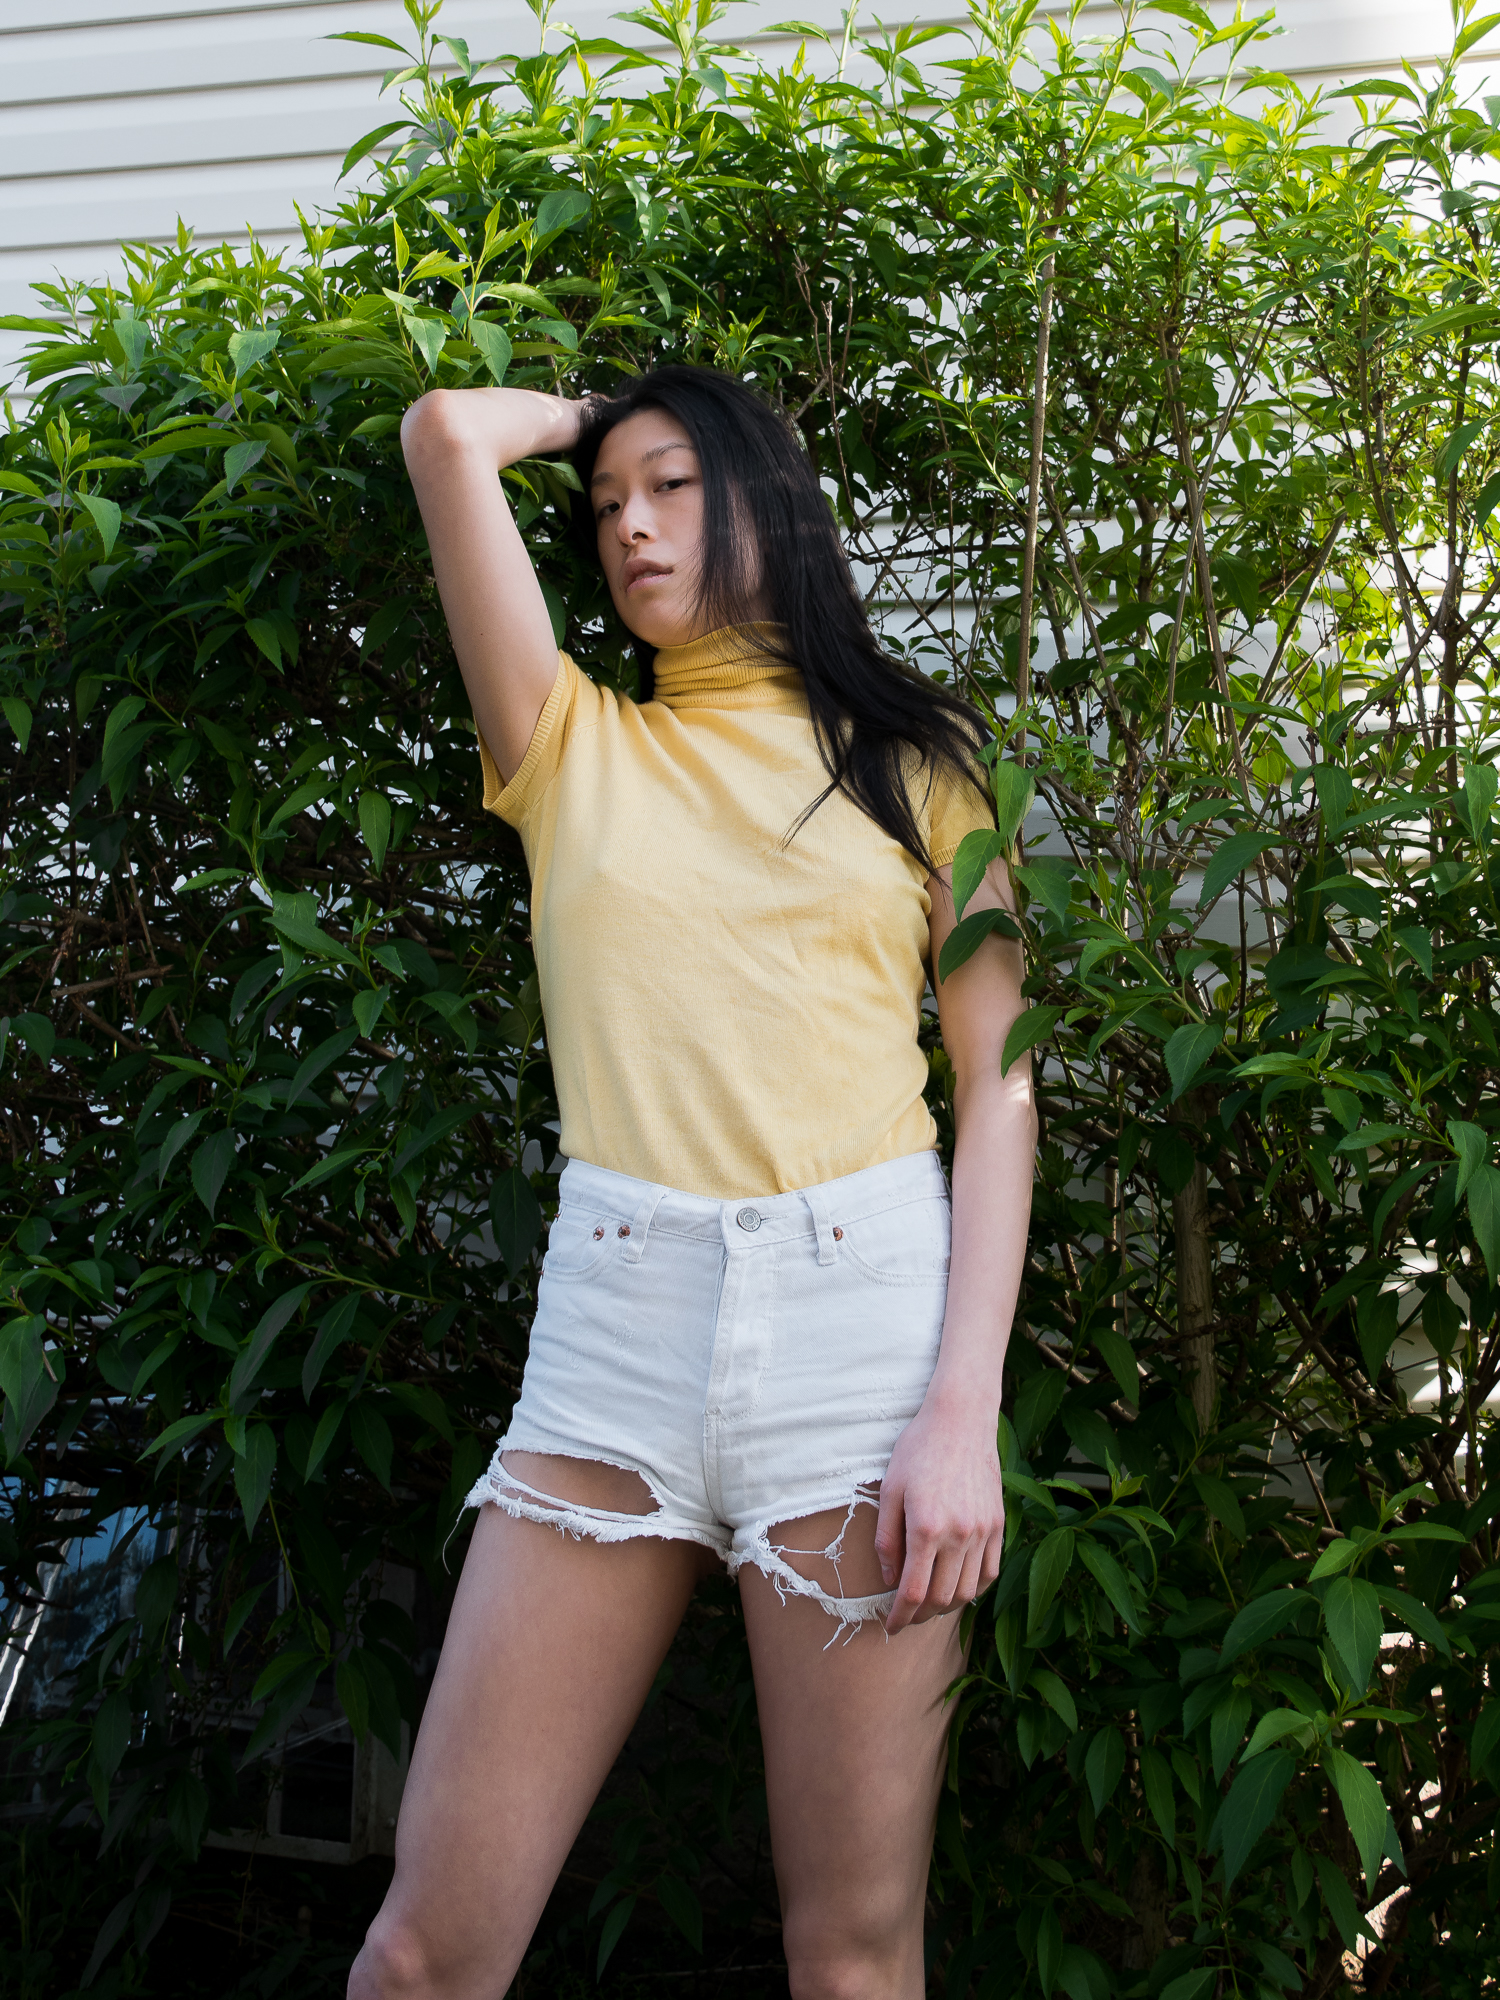 Cute summer outfit close-up, yellow top, white shorts